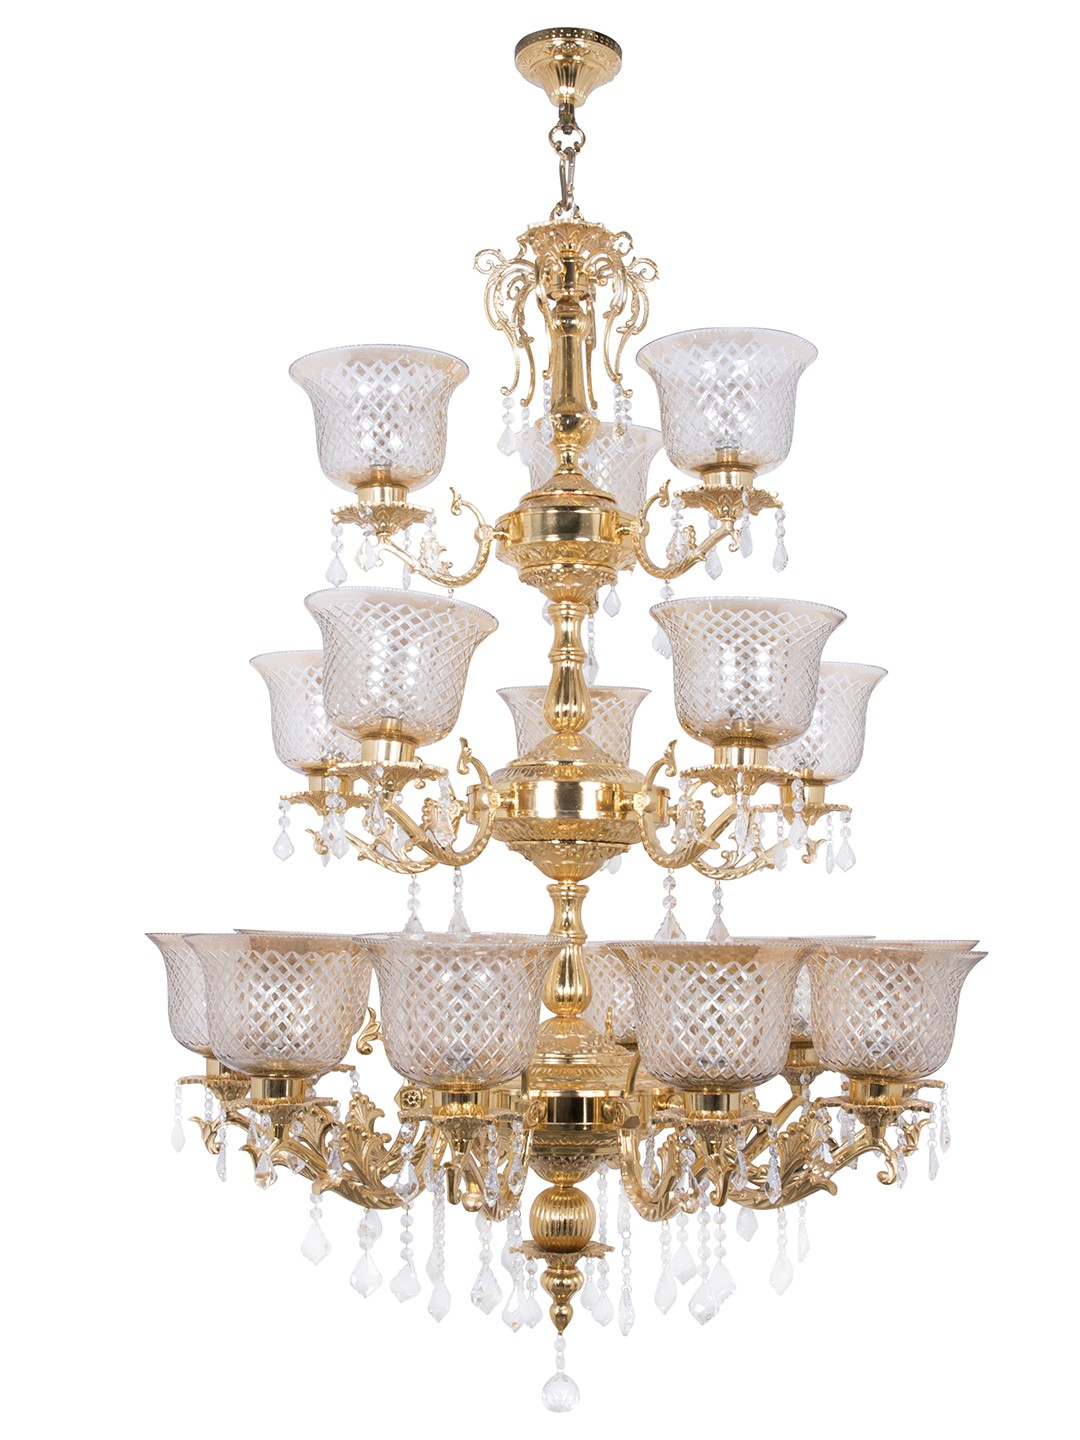 Majestic Gold & Crystal Aluminium 3 Tier 18 Light Chandelier with Golden Hand Cut Glass Shades